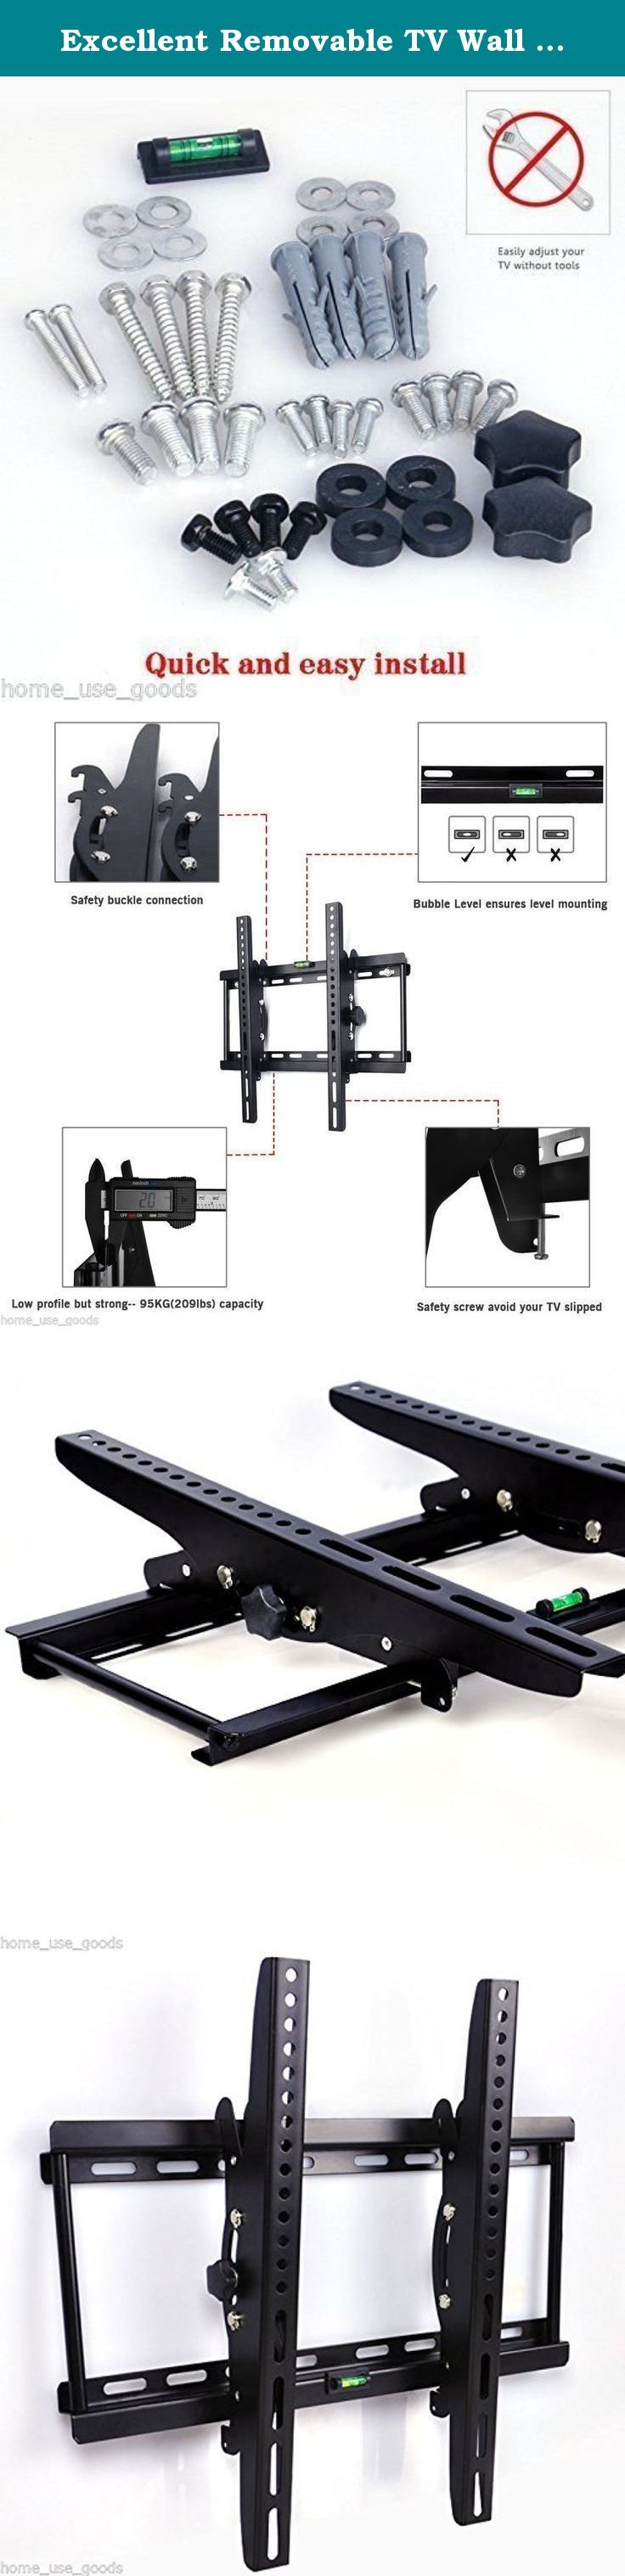 Excellent Removable TV Wall Bracket for 26-55 Inch LED LCD Plasma Flat TVs Super Strong 60KG Weight Capacity Max VESA 400X400mm. Specifications: Condition: Brand new TV Size:26-55 inch Compatible VESA Dimensions:75*75mm 100* 100mm 200*200mm 400*400mm Max VESA :400*400mm Load Capacity: 60kg (132 lbs) Mobile bar size: L 43cm , W 22cm Features: Extendable bracket TV Wall Bracket for inch LCD, LED & Plasma TV Save space,and provide different perspective for watching TV Use in bedroom, living...